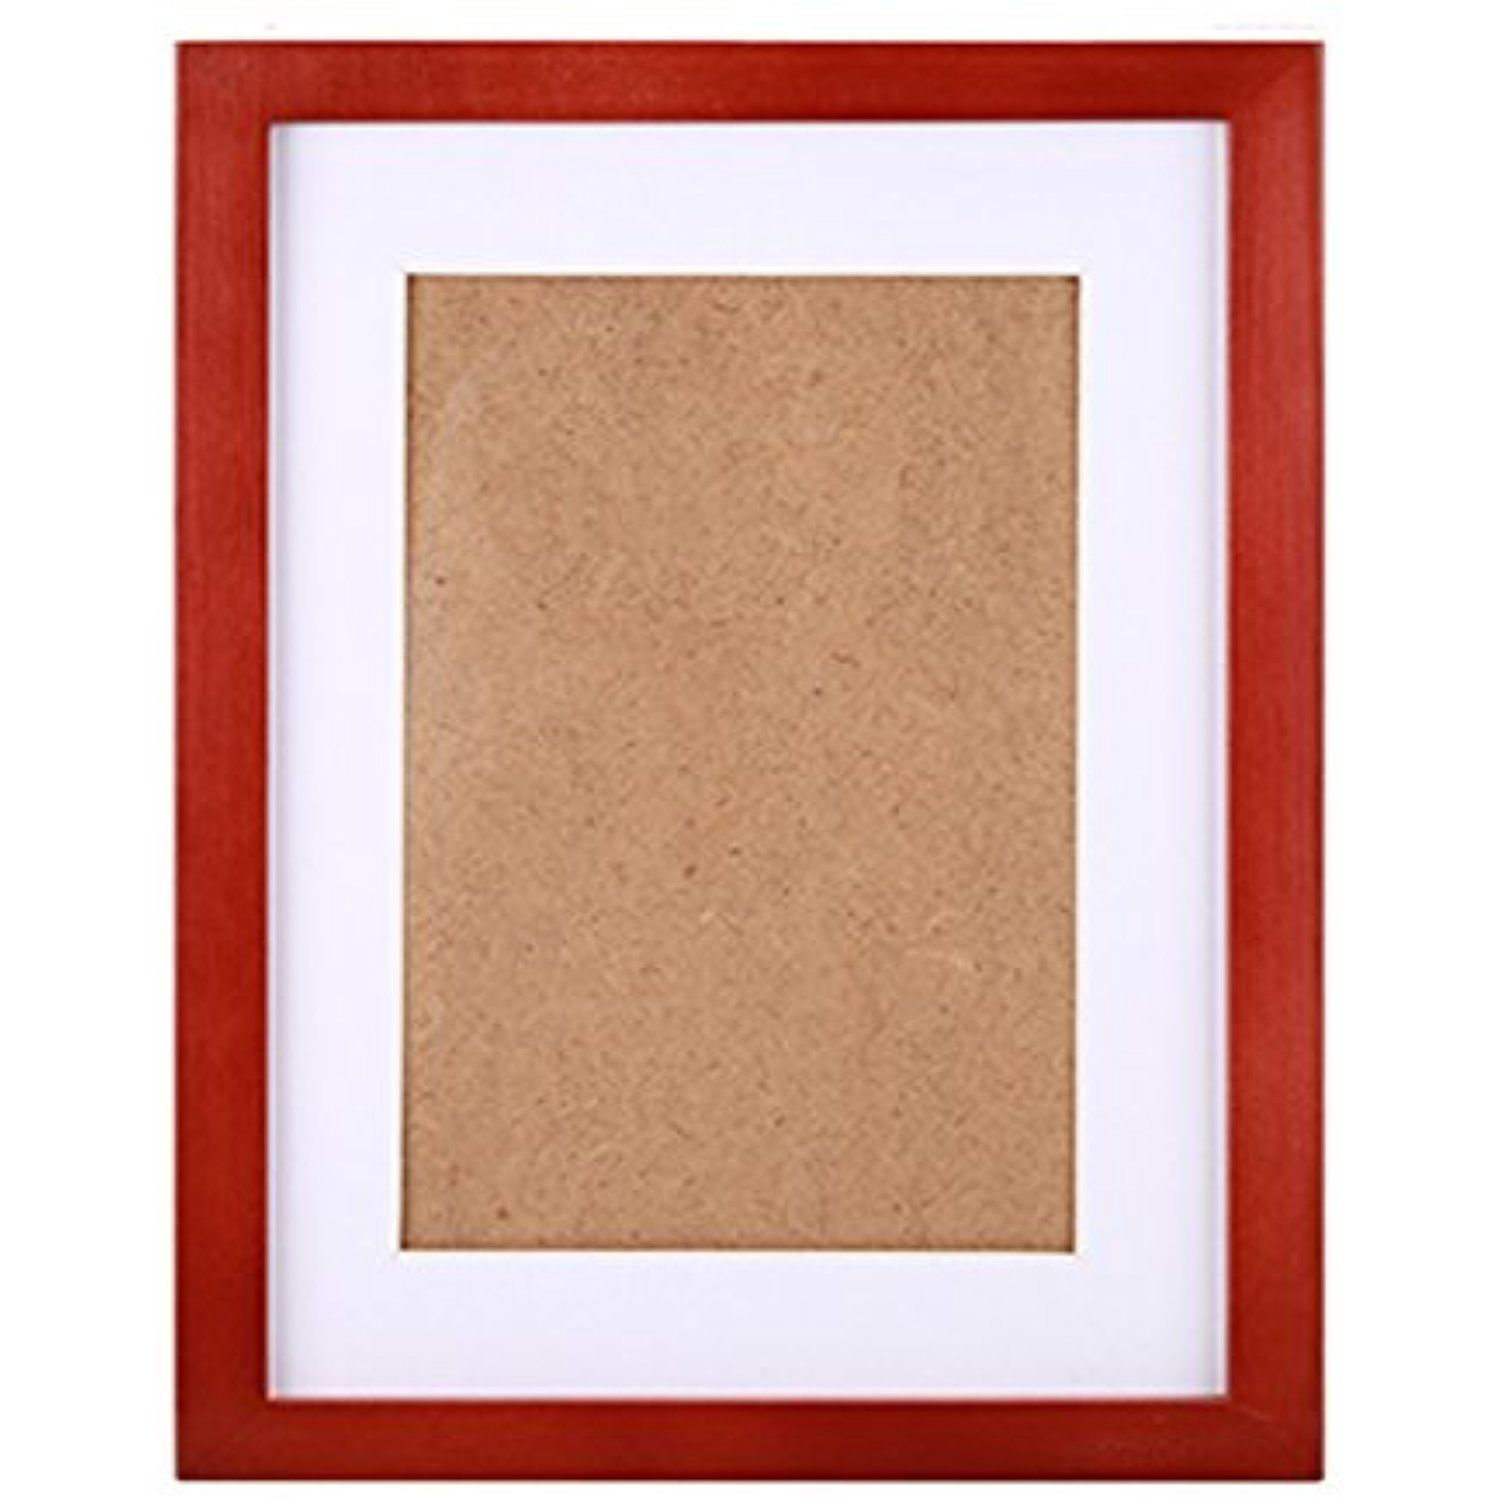 Noharin 13x17 Inch Simple Style Wood Picture Frames Made To Display Pictures 12x16 Without Mat Or 8x12 Wit Wood Picture Frames Picture Mounting Picture Display